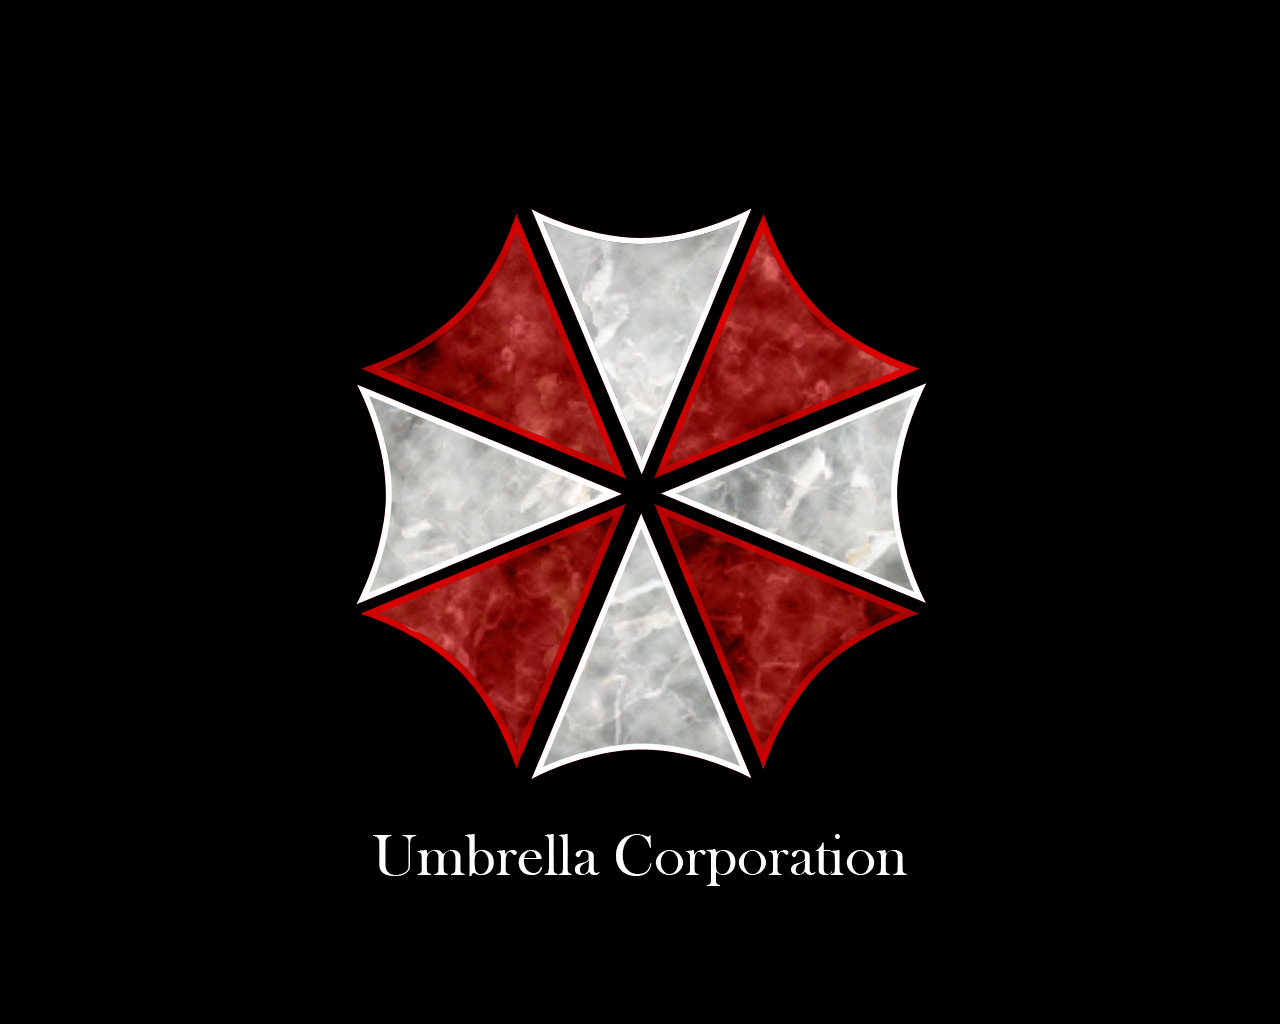 Umbrella Corporation Background Awful